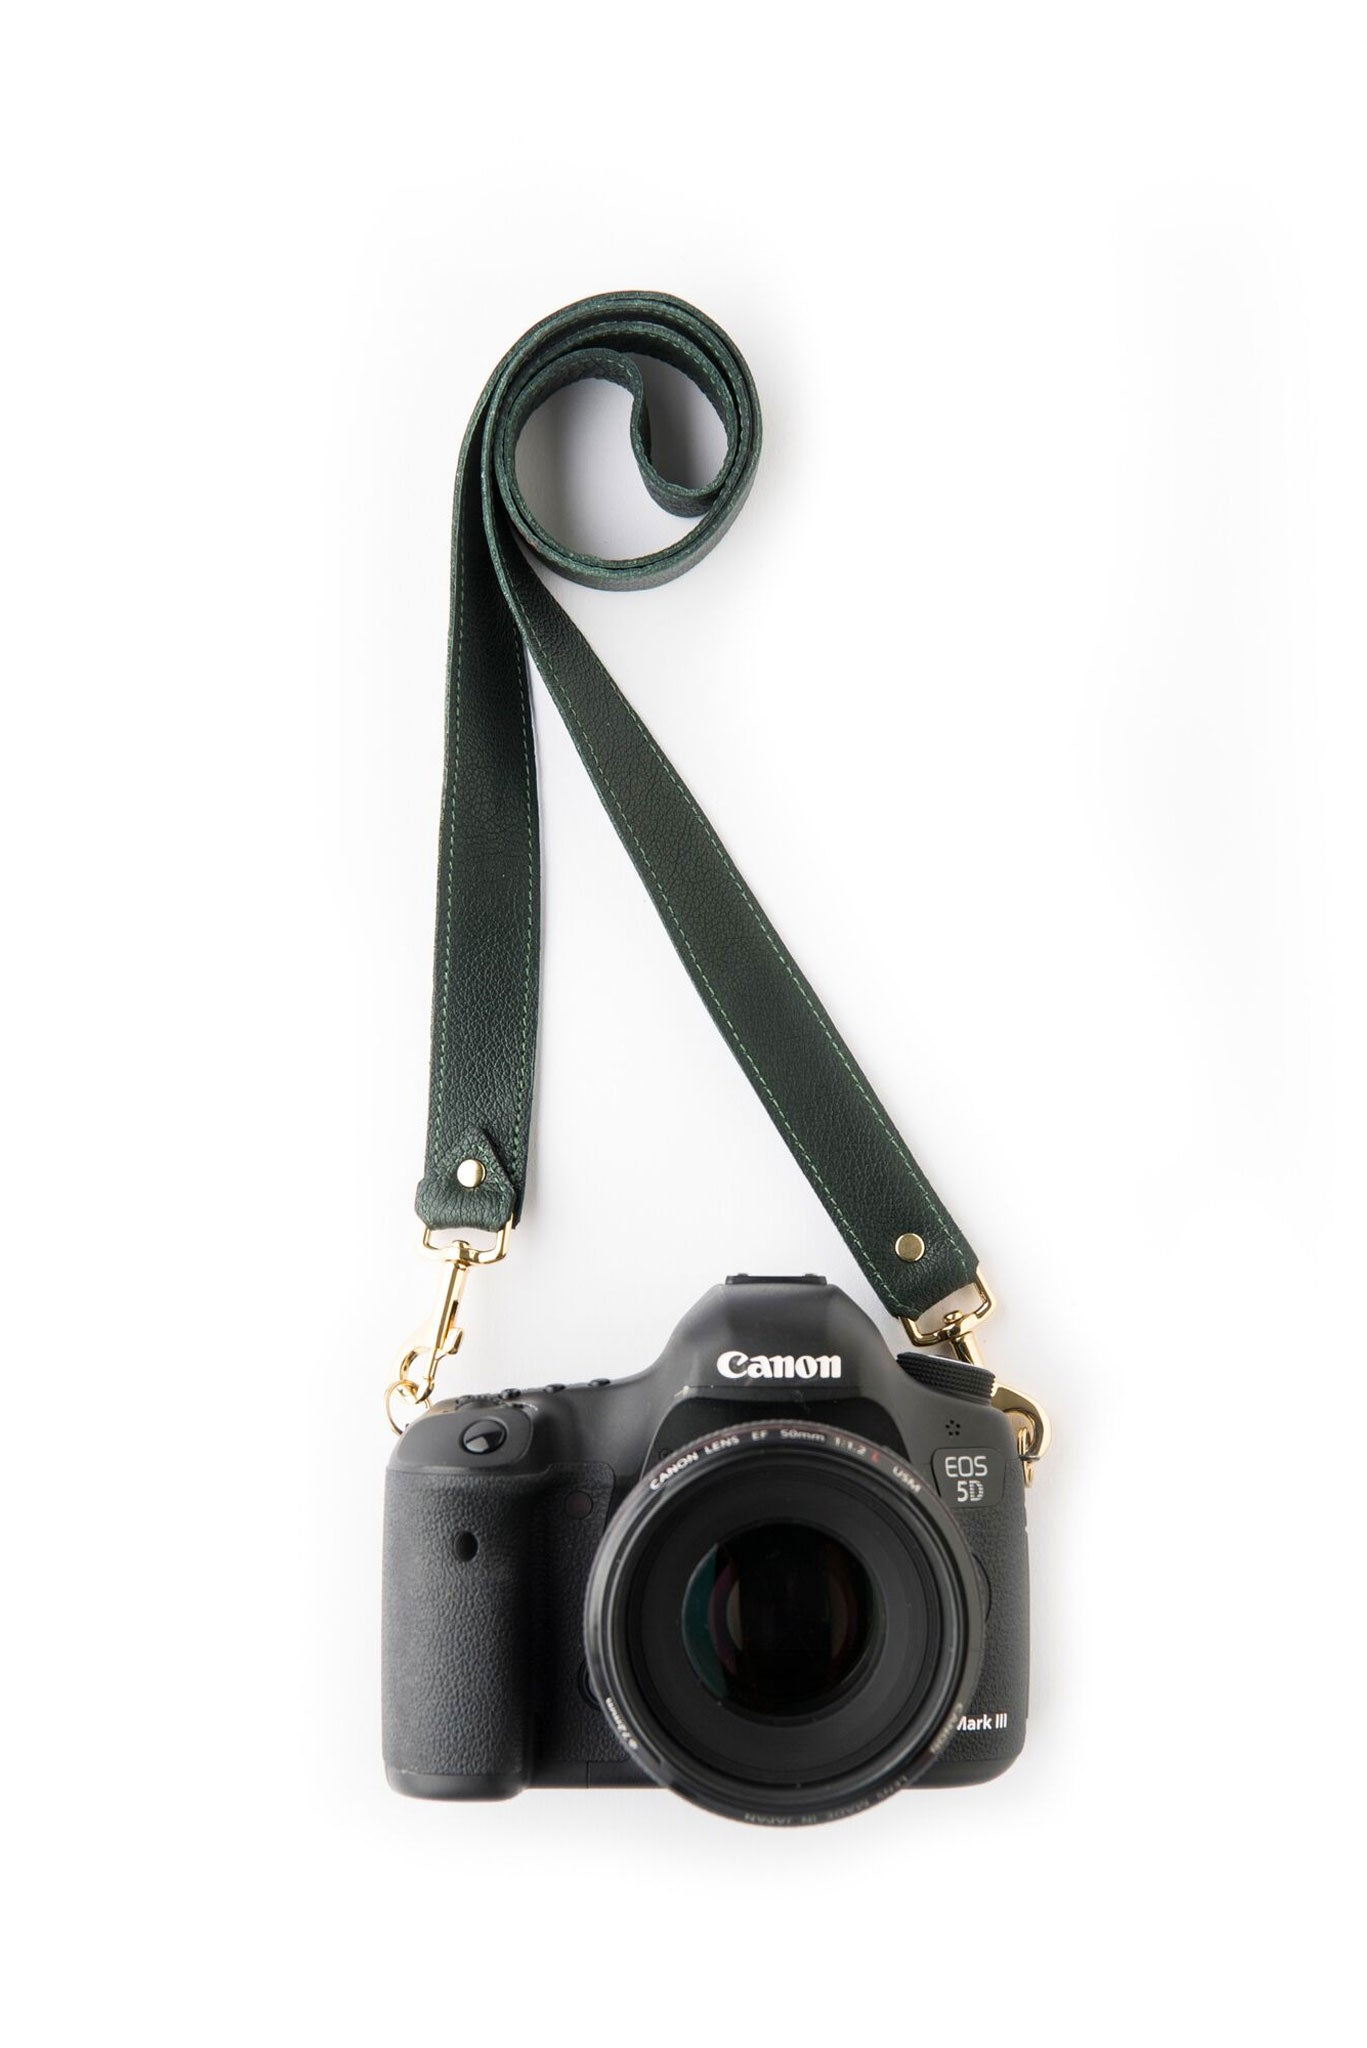 FOTO | The Designer in Pine - a pine green genuine pebbled leather camera strap that can be personalized with a monogram or business logo, making this leather camera strap the perfect personalized gift.